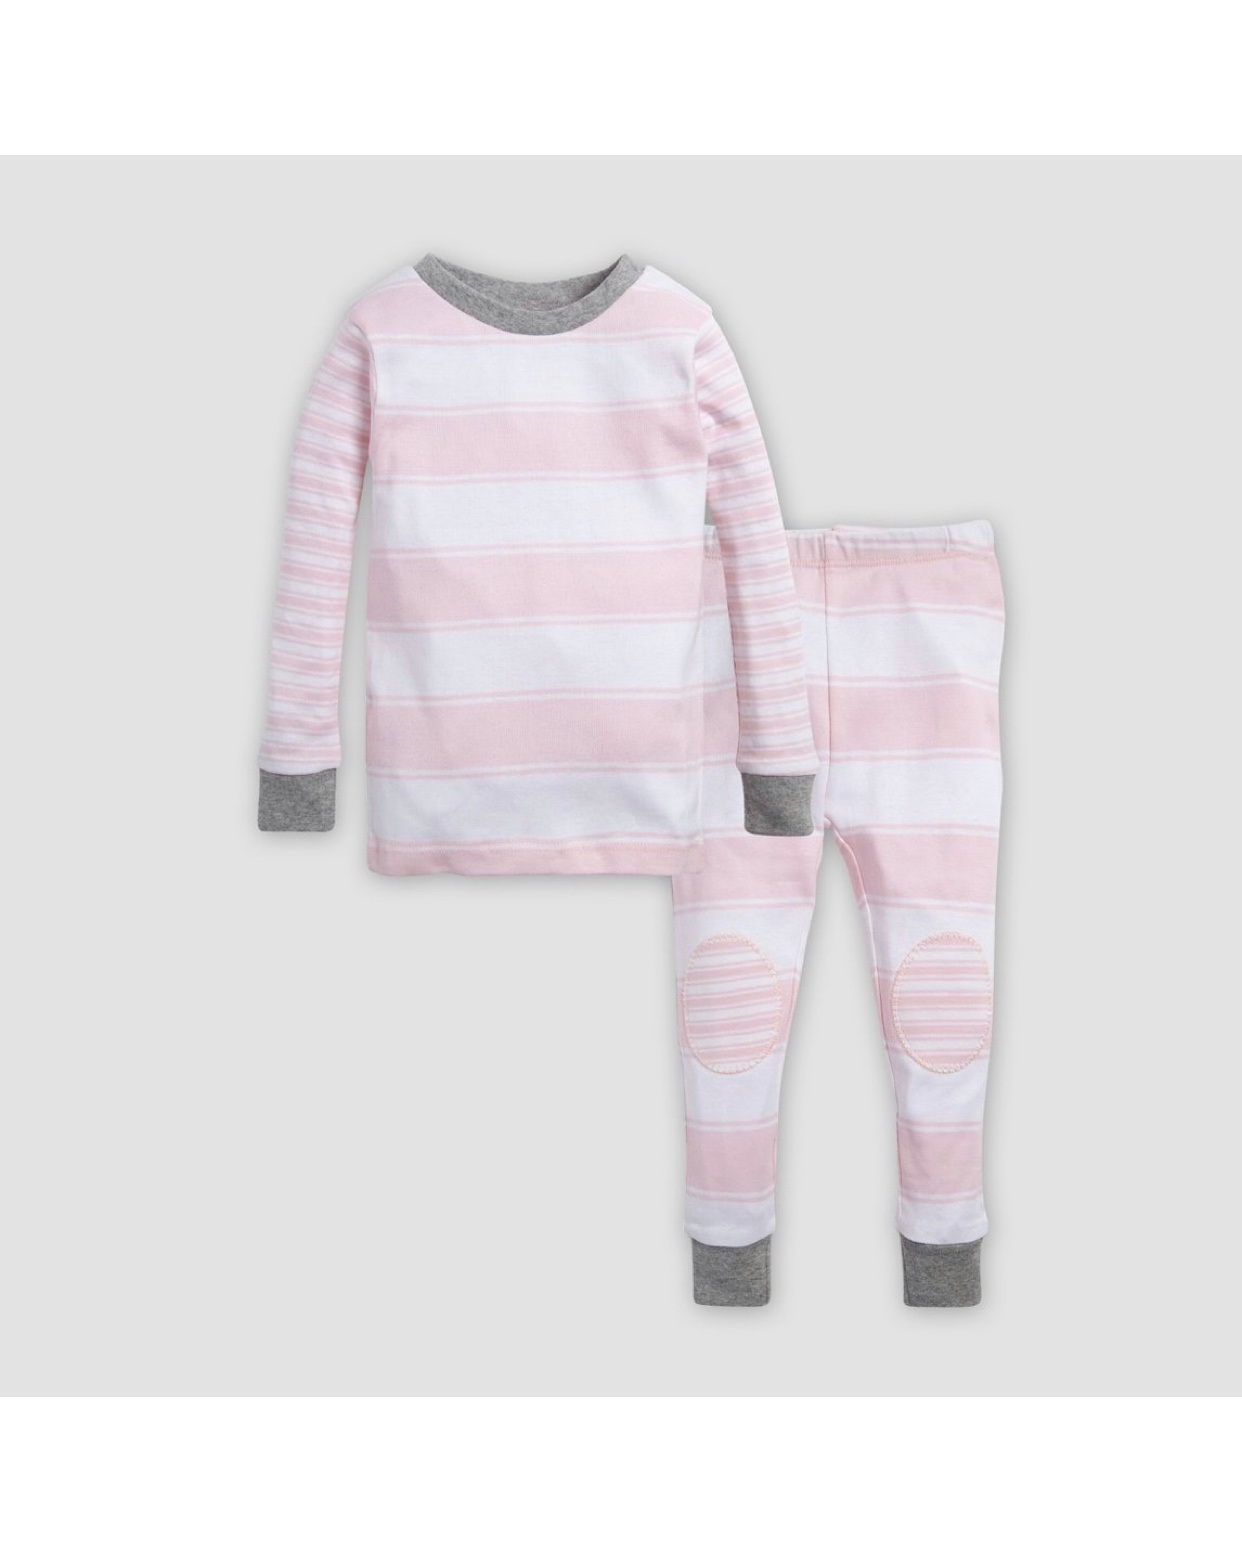 - These are currently on sale in Target stores for $11! Love me some Burts Bees PJ's!Find them here. (But buy in store!)